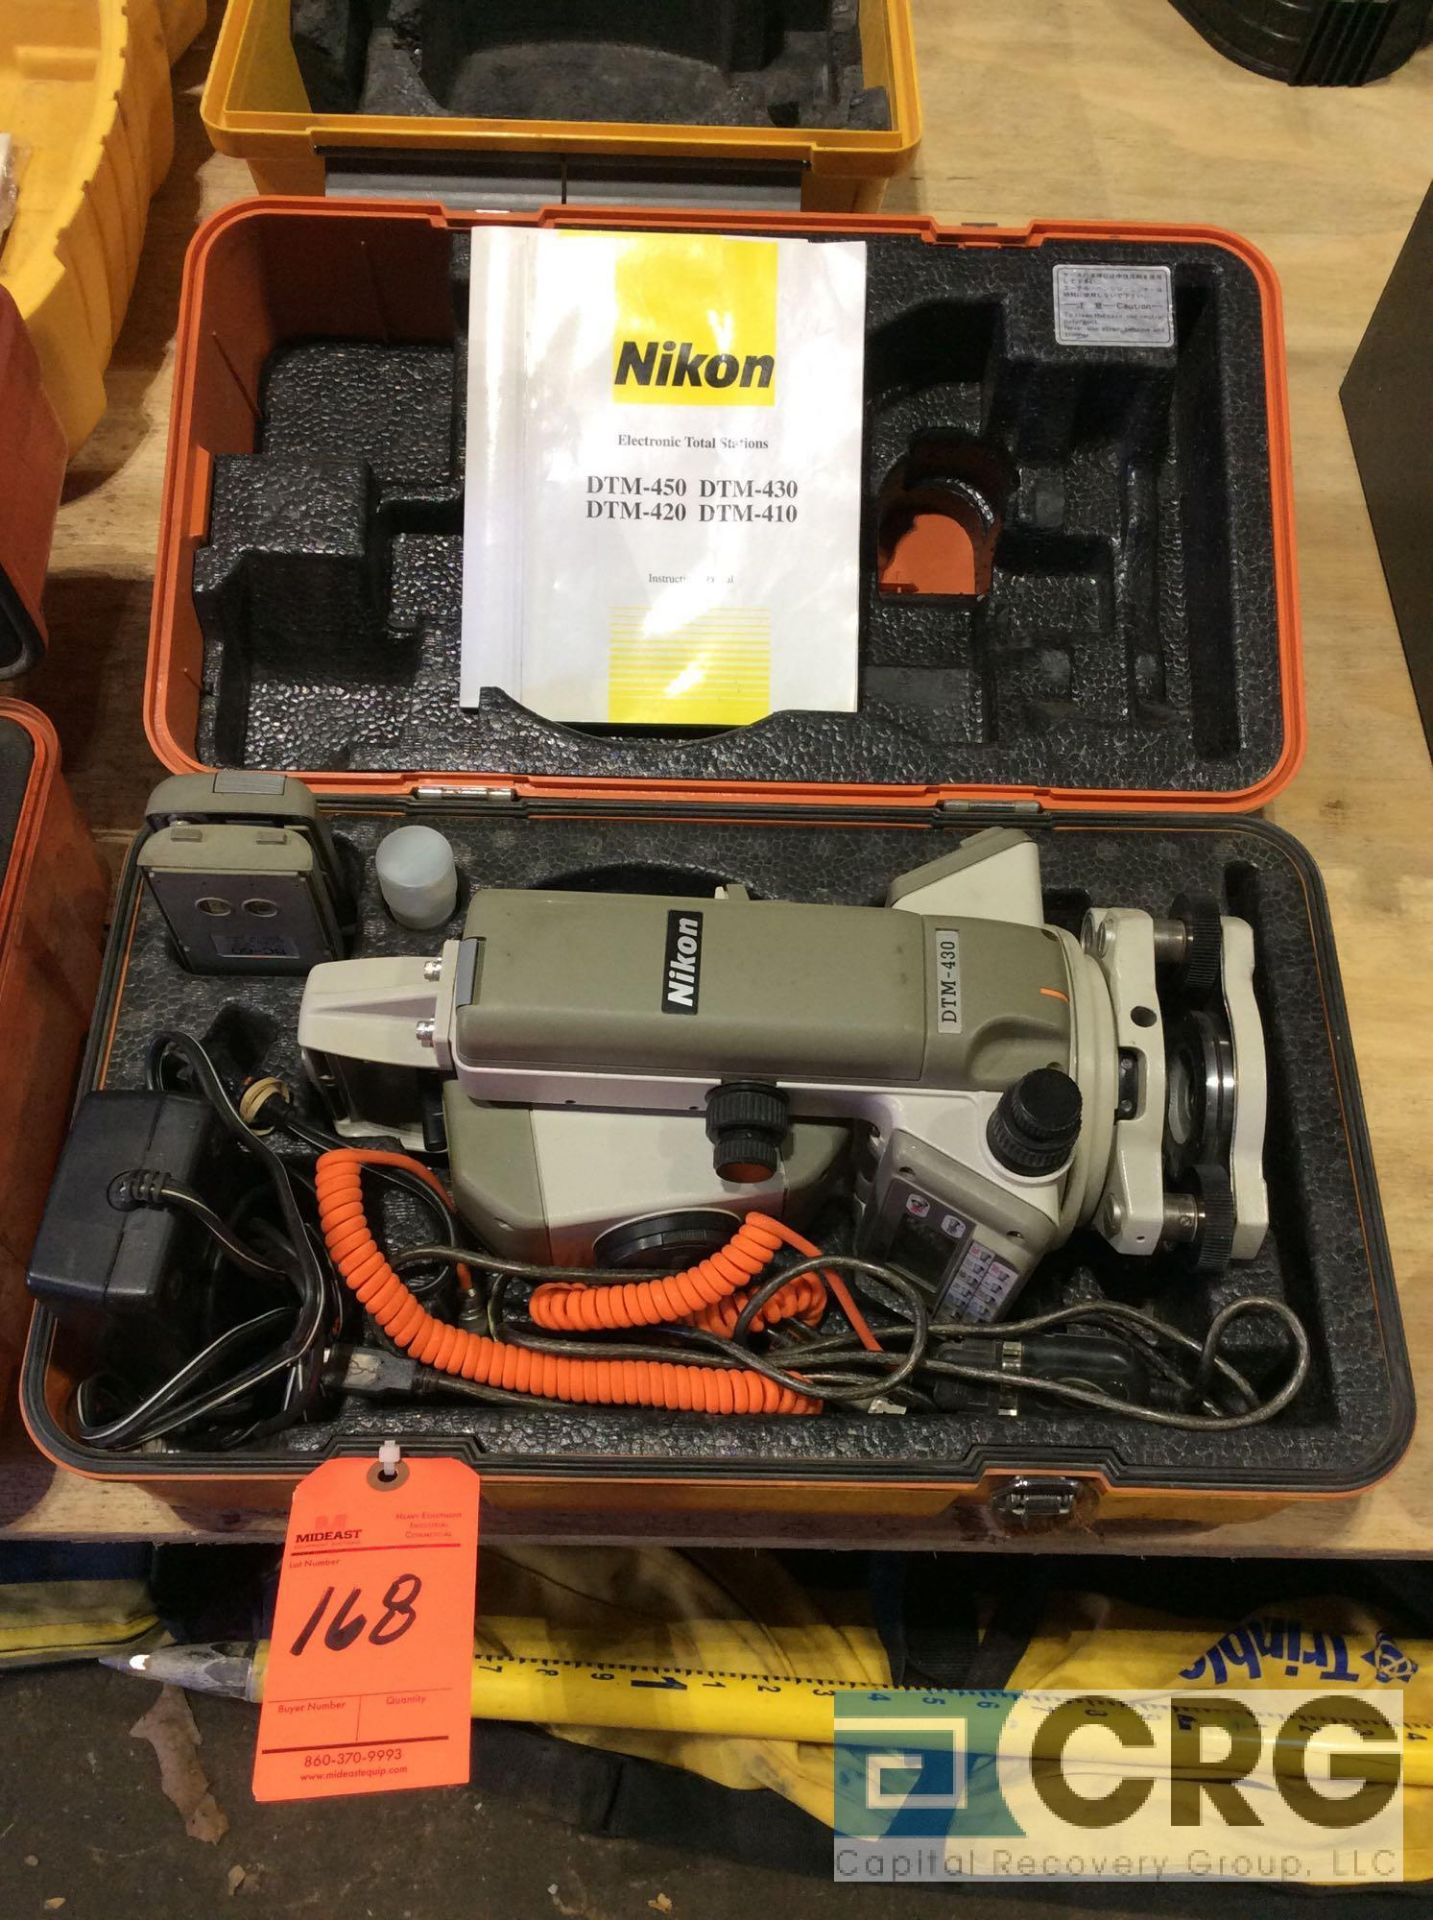 Lot 168 - Nikon DTM-430 electronic total station with case